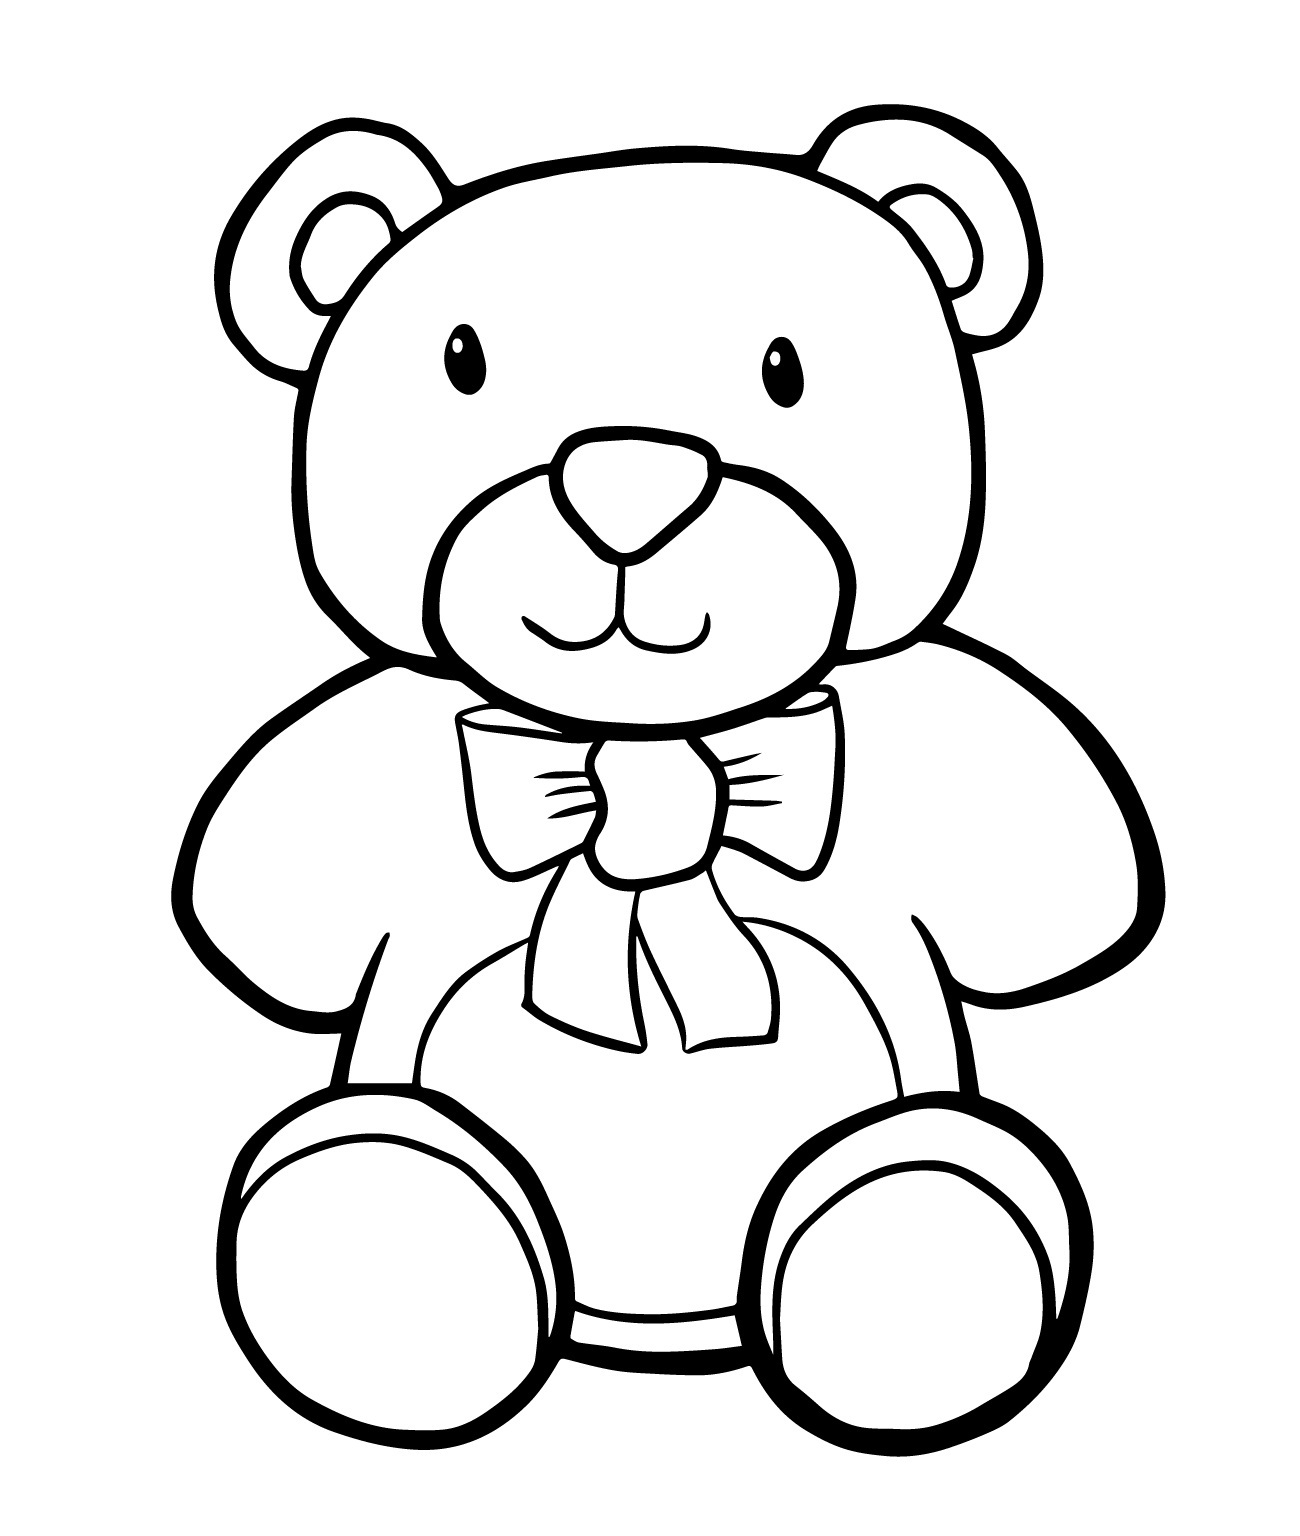 coloring page pages teddy bear - photo#13